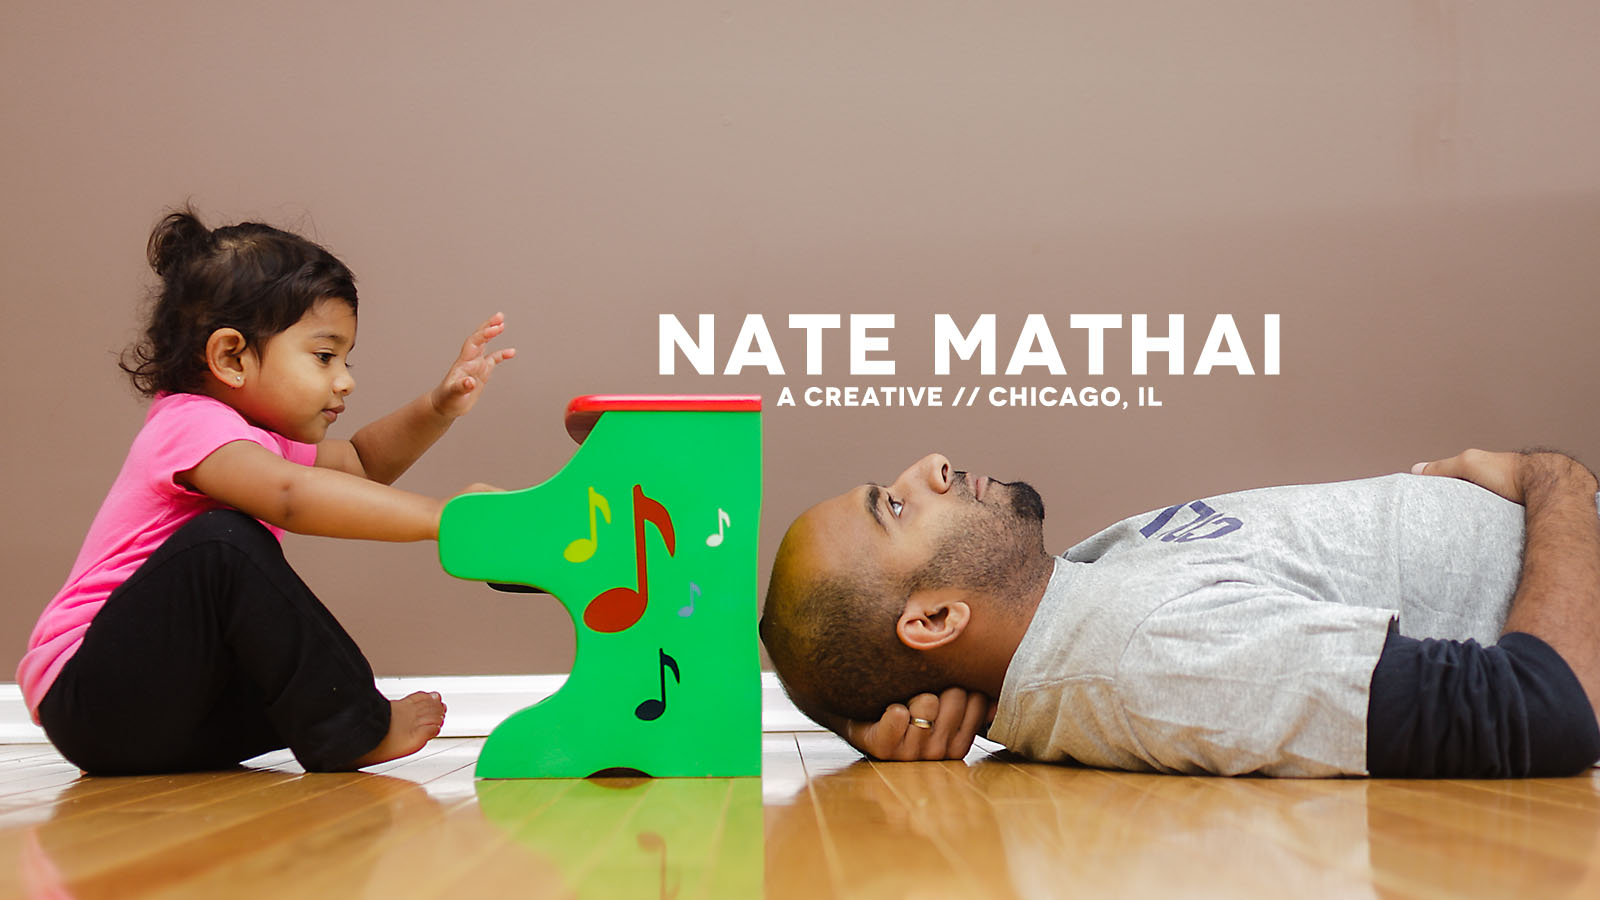 top image for Facebook by chicago wedding photographer nate mathai